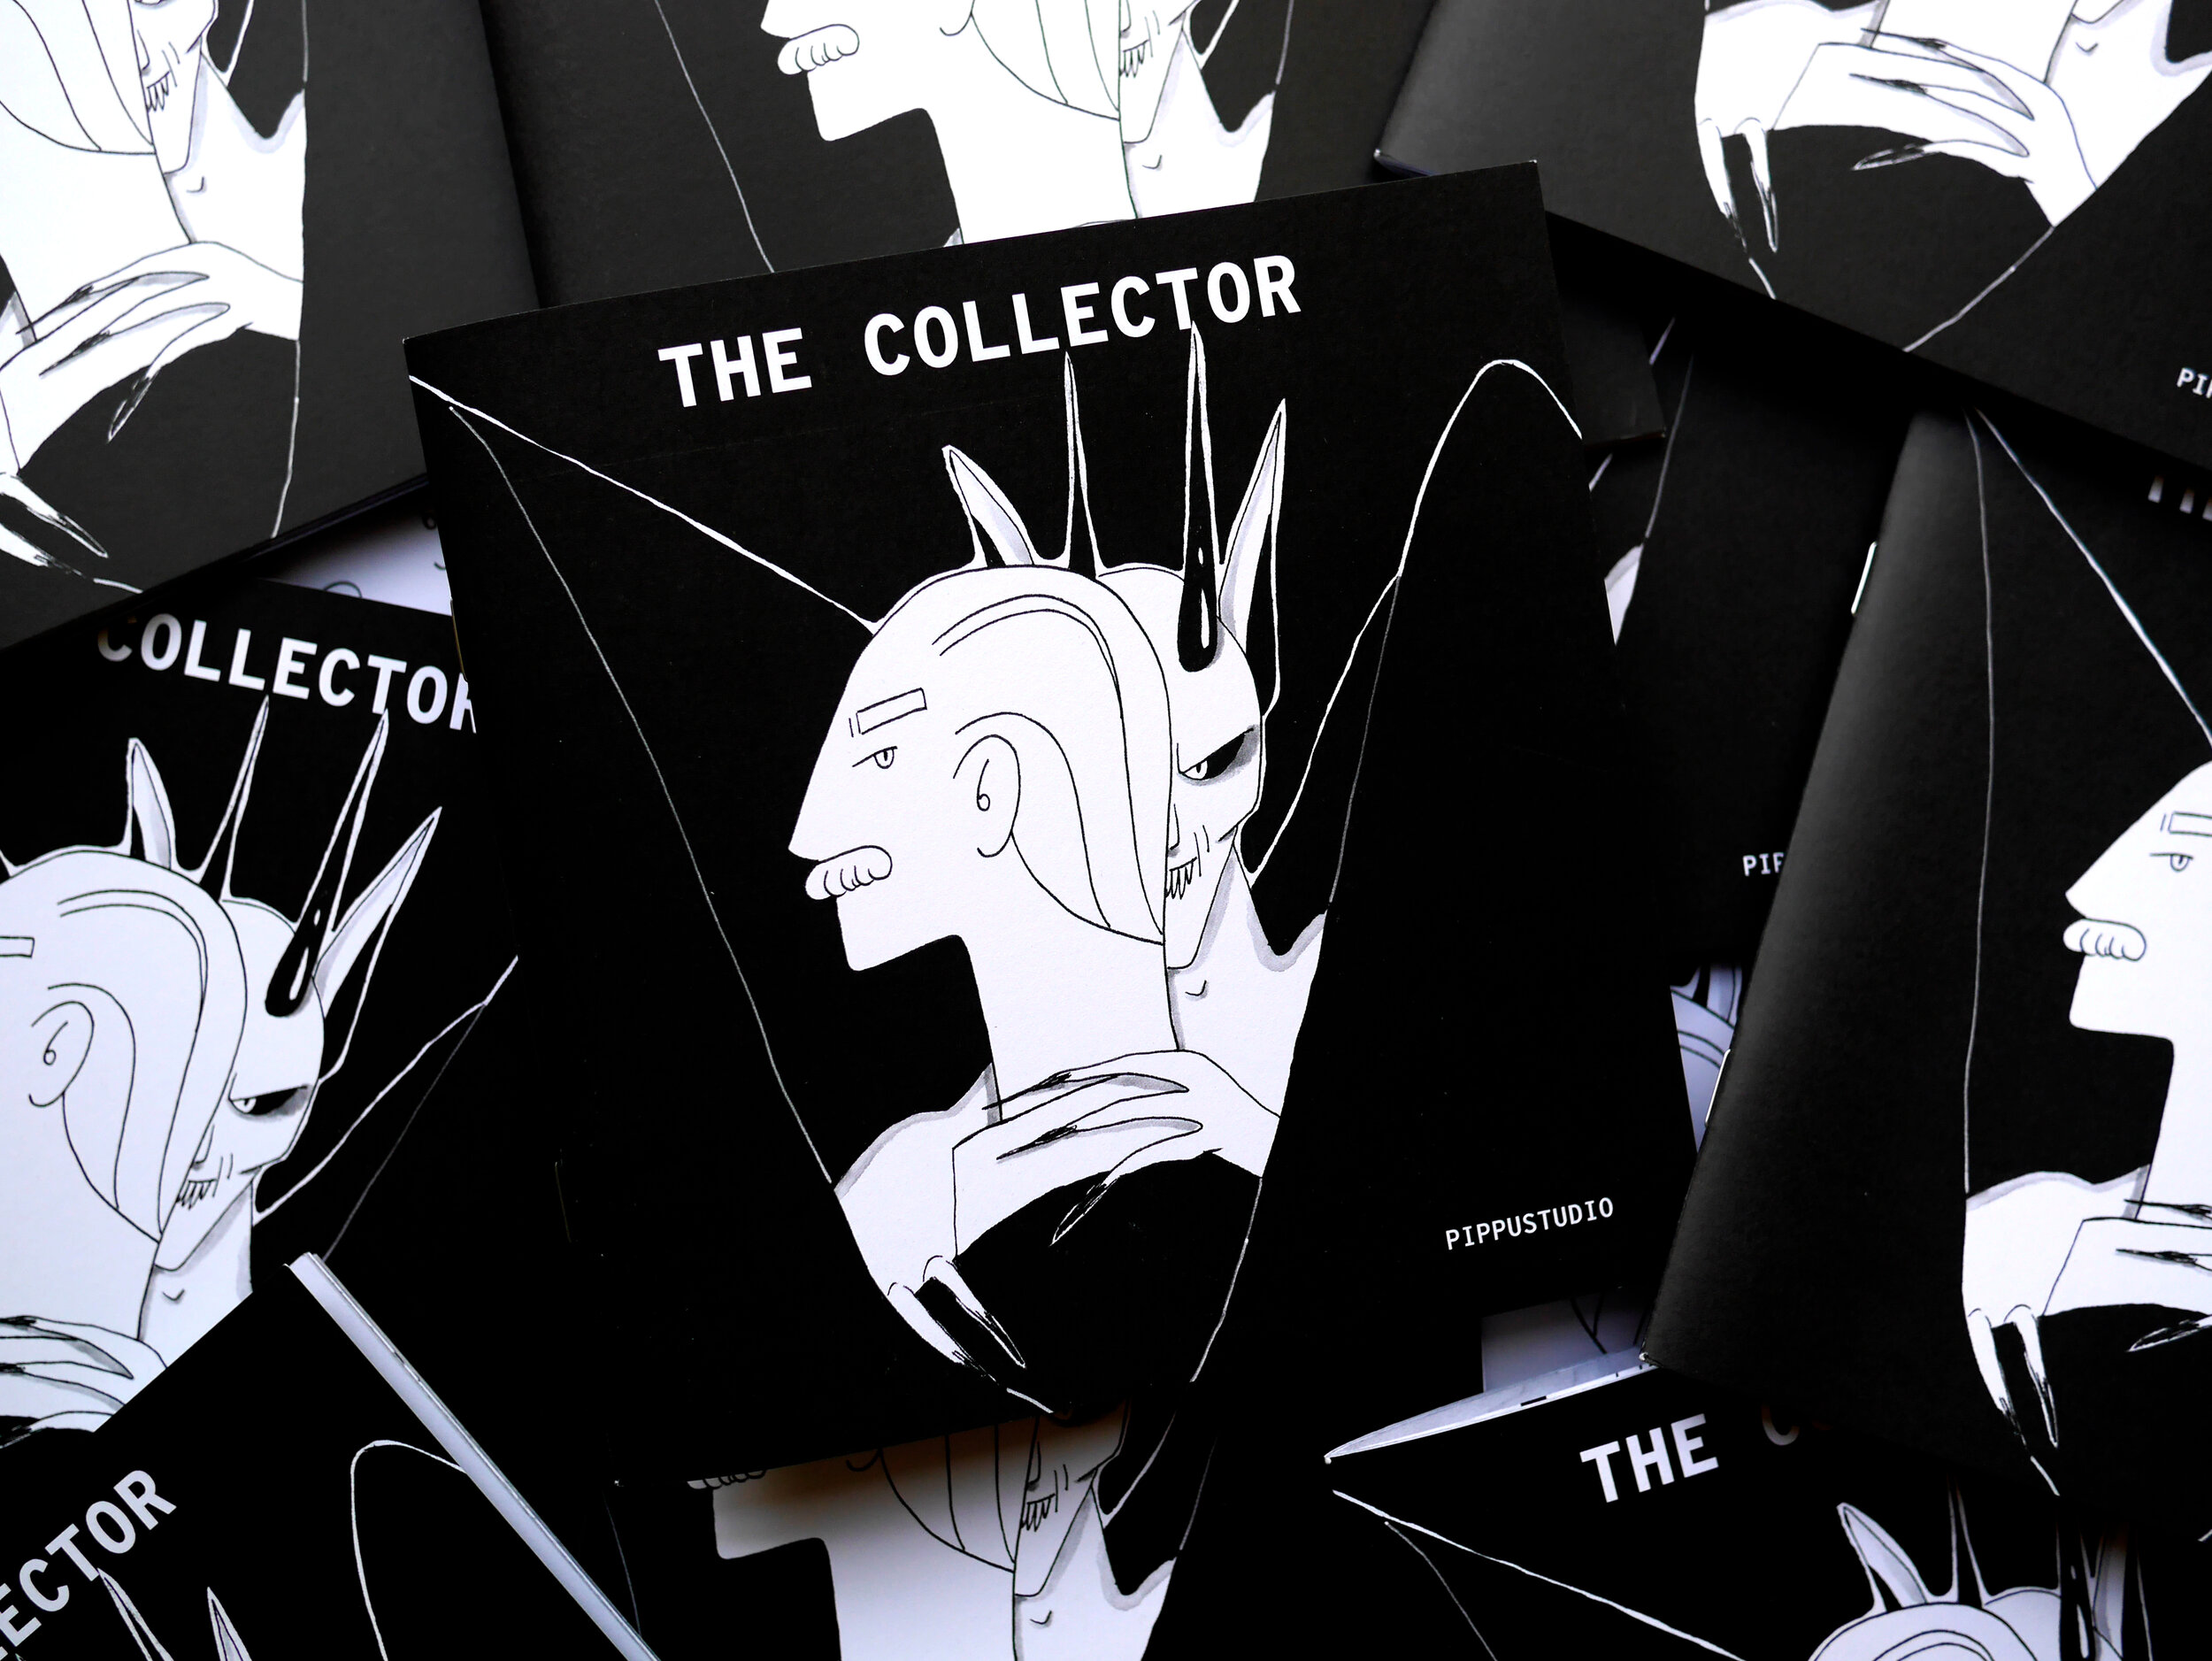 The collector book sample pages